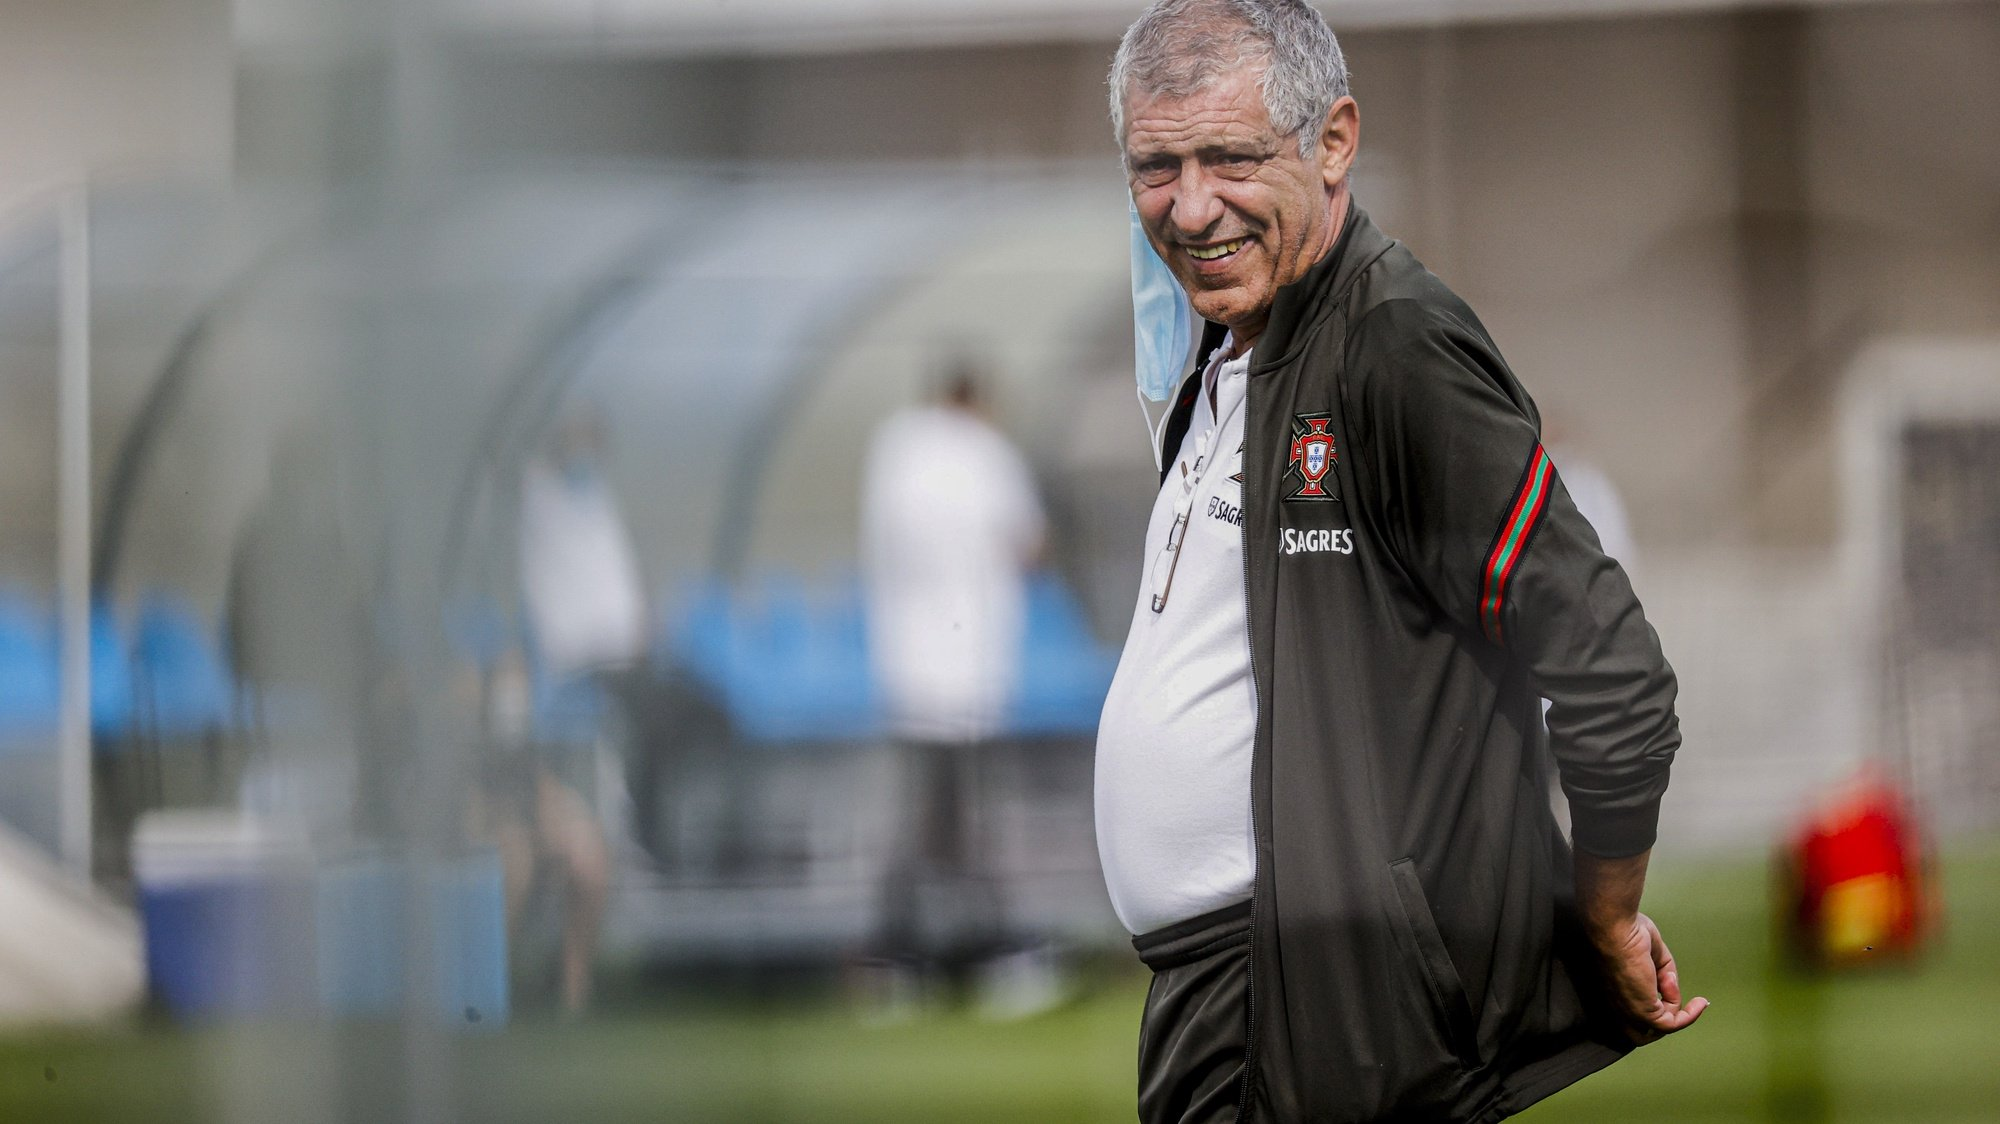 A handout photo made available by Portuguese Football Federation shows Portugal national soccer team head coach Fernando Santos during a training session for the upcoming UEFA Nations League soccer match with France to be held next 11th October in Paris, Lisbon, Portugal, 8th October 2020. DIOGO PINTO/FEDERAÇÃO PORTUGUESA DE FUTEBOL/LUSA